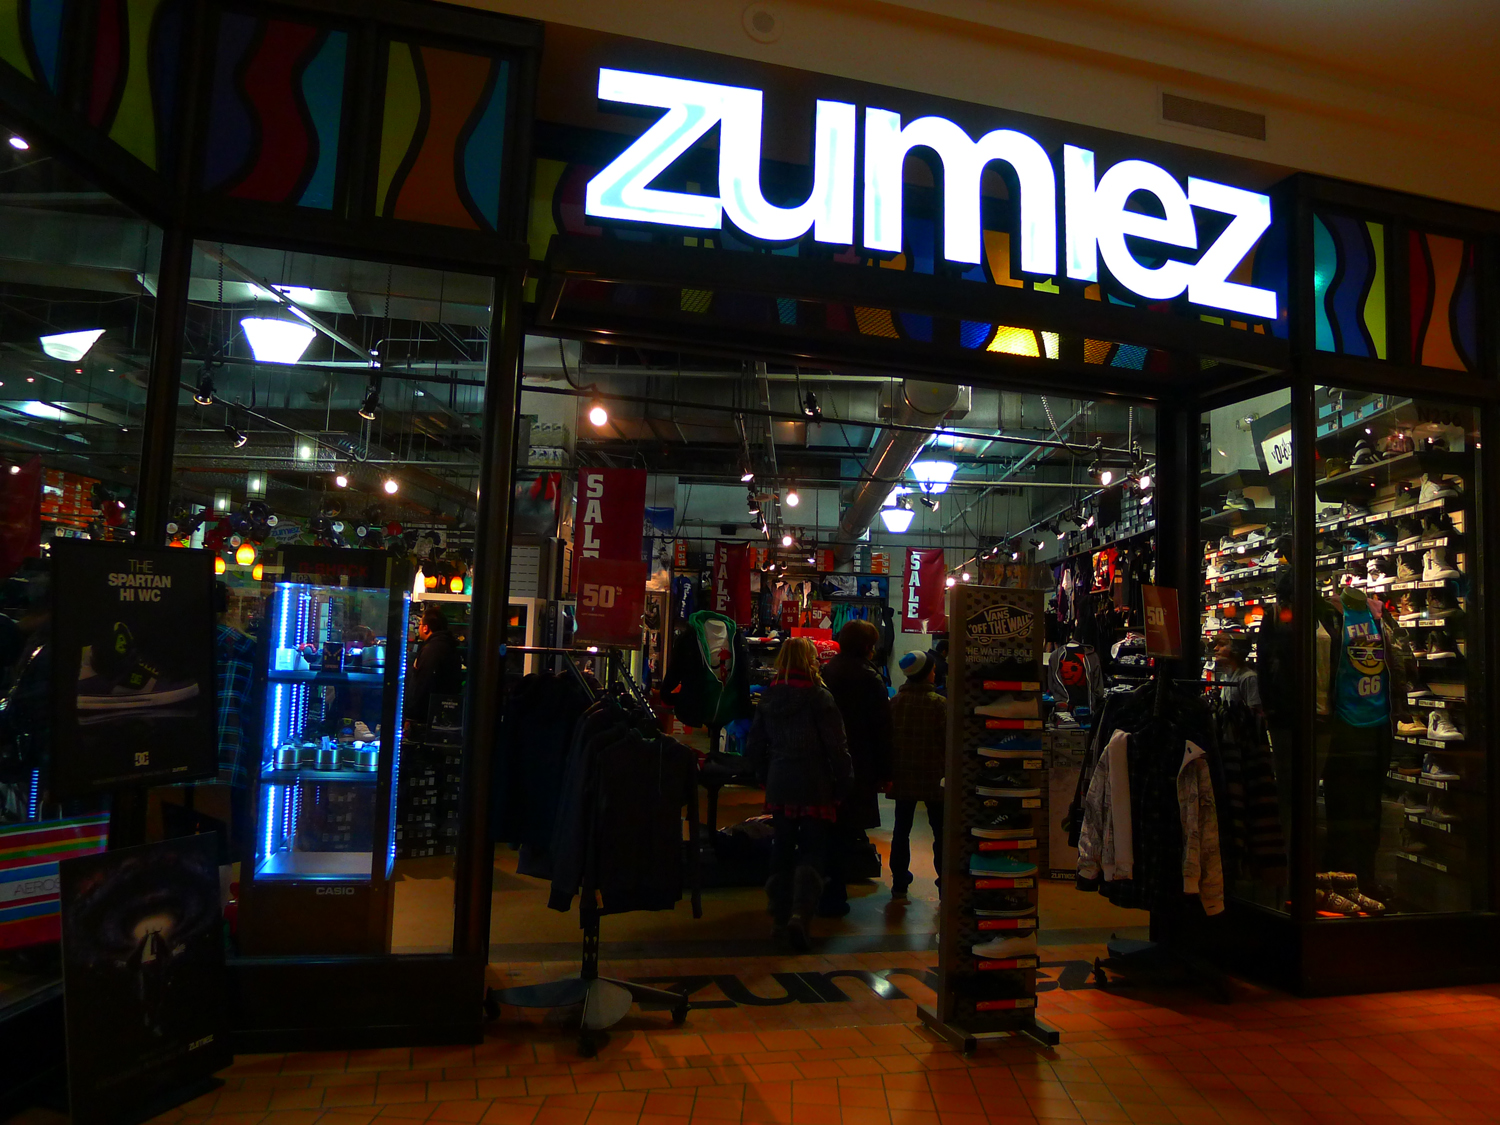 Zumiez - Whoa These Two Places Look Nearly Identical In Decor And Layout Design The Microsoft Store Is Right Across Form The Apple Store In Th Mall